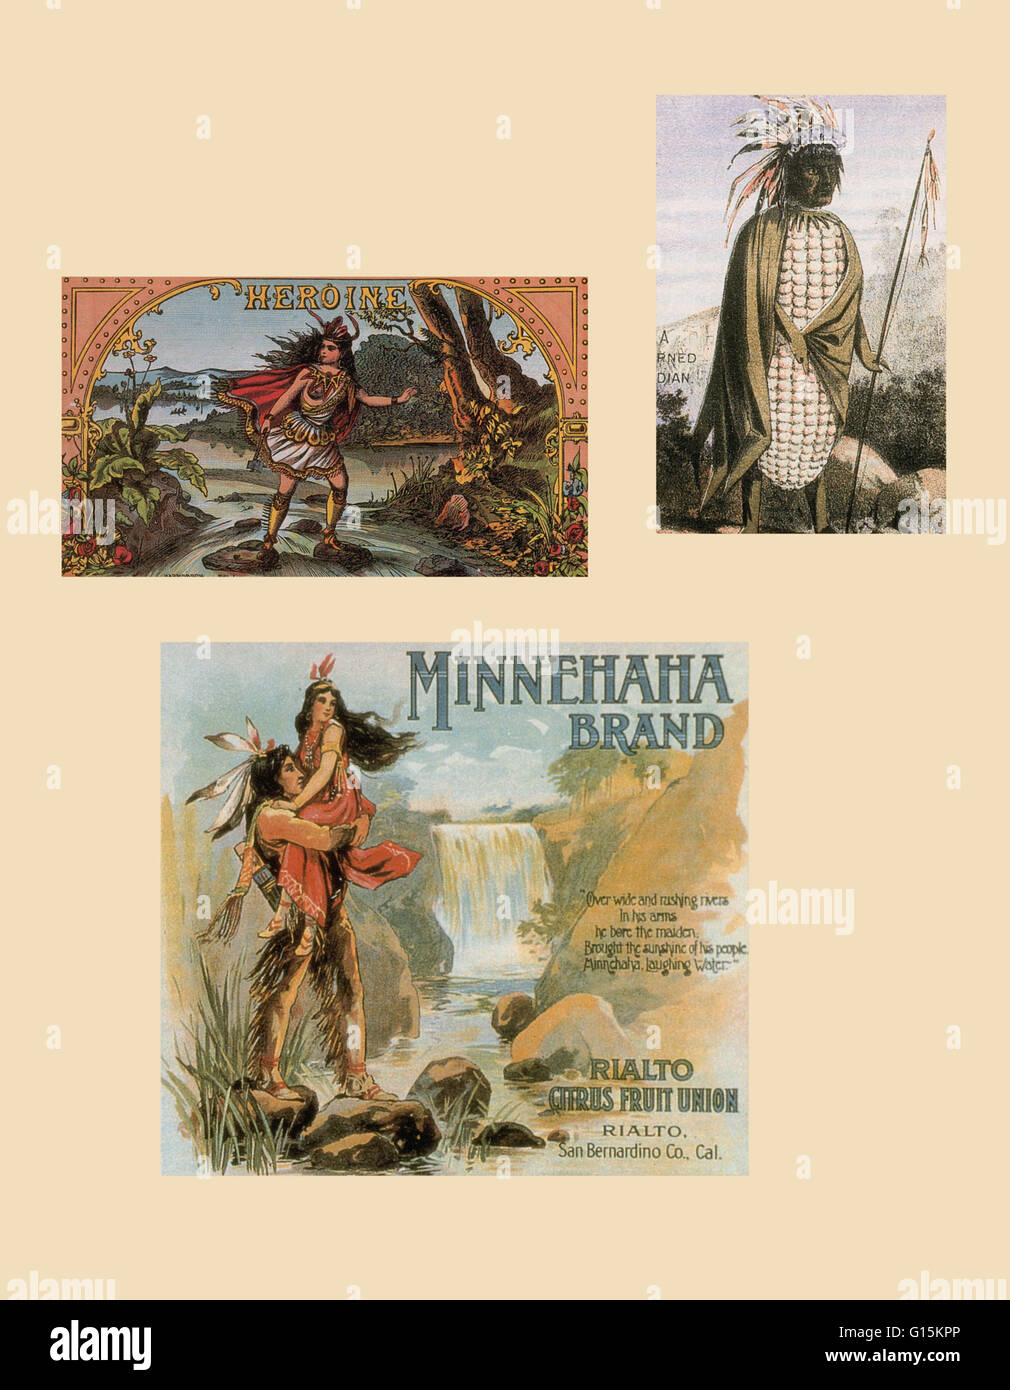 Assorted advertisements featuring Native American stereotypes. Clockwise: Heroine cigar box label, c. 1875; Native - Stock Image